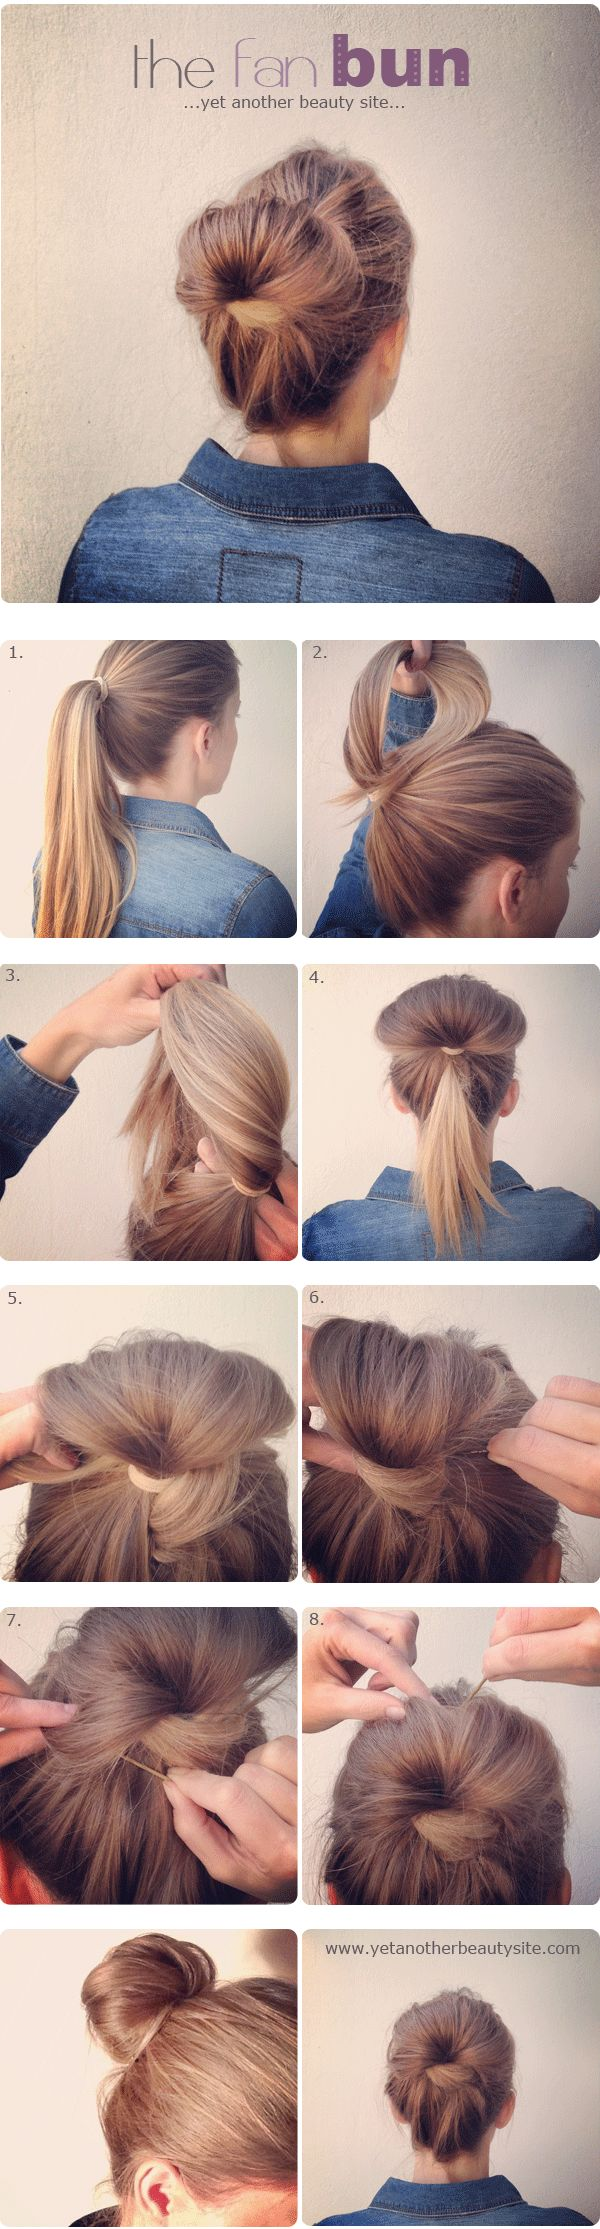 Awe Inspiring 1000 Images About Simple Hairstyles On Pinterest Chignons Buns Short Hairstyles Gunalazisus